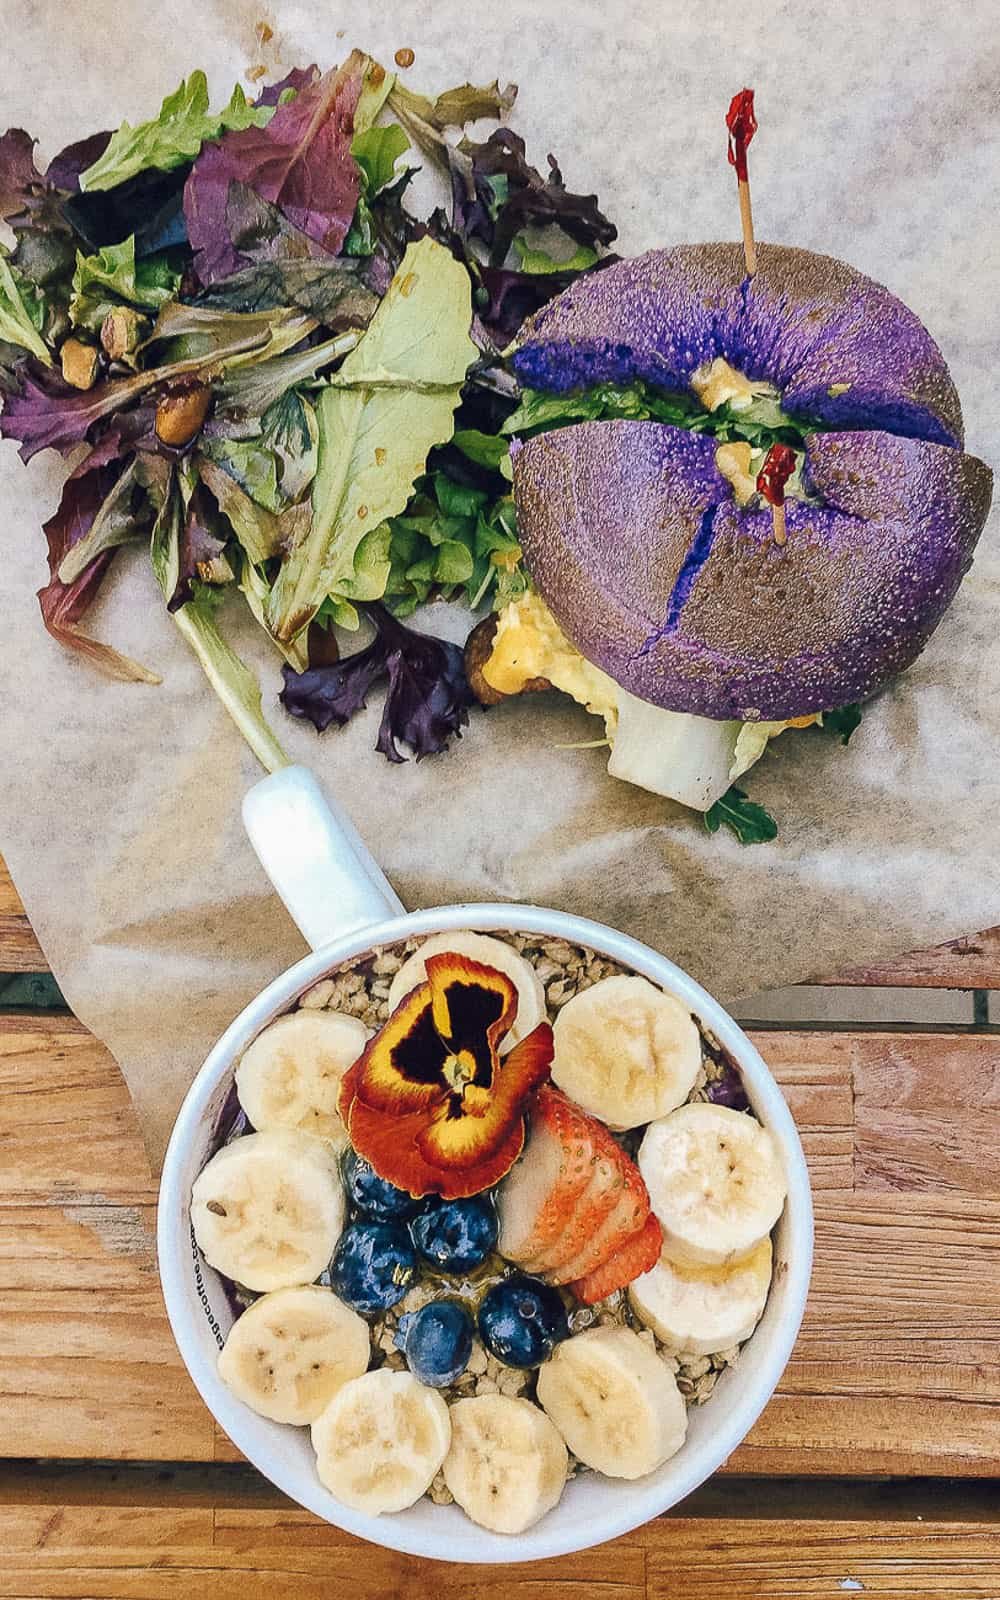 BEST AÇAÍ BOWL OAHU